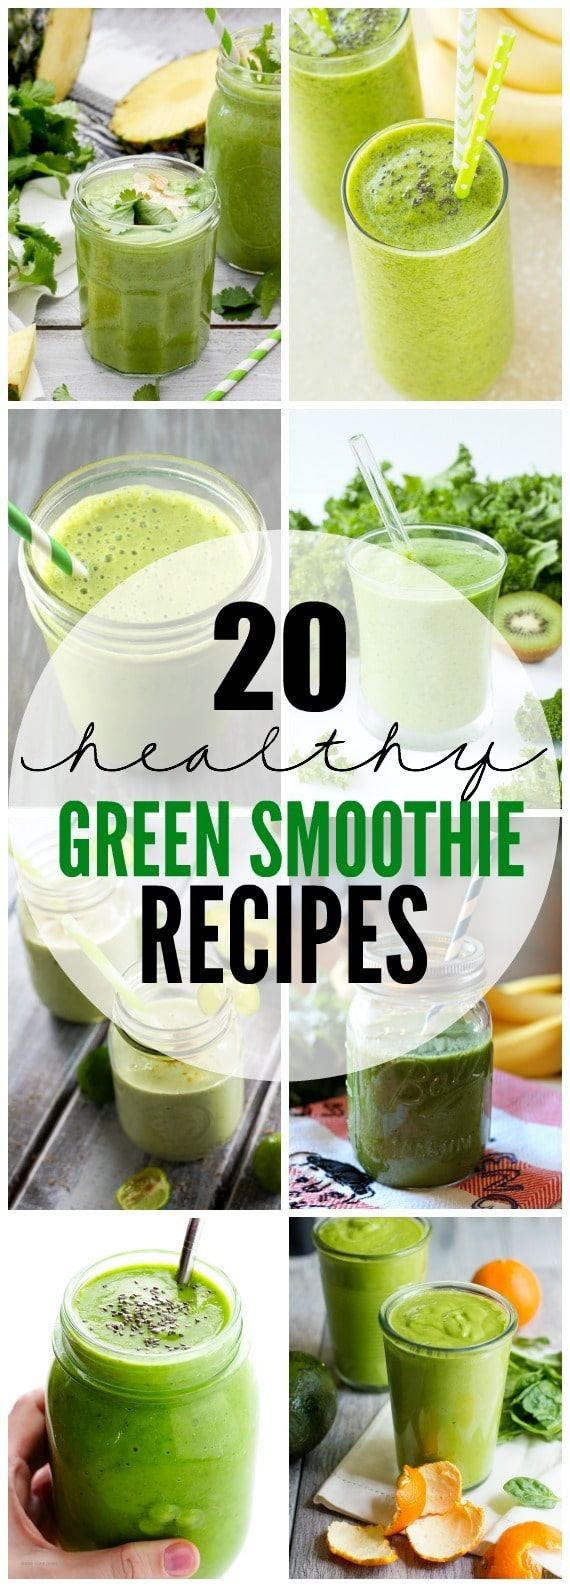 20 Healthy Green Smoothie Recipes